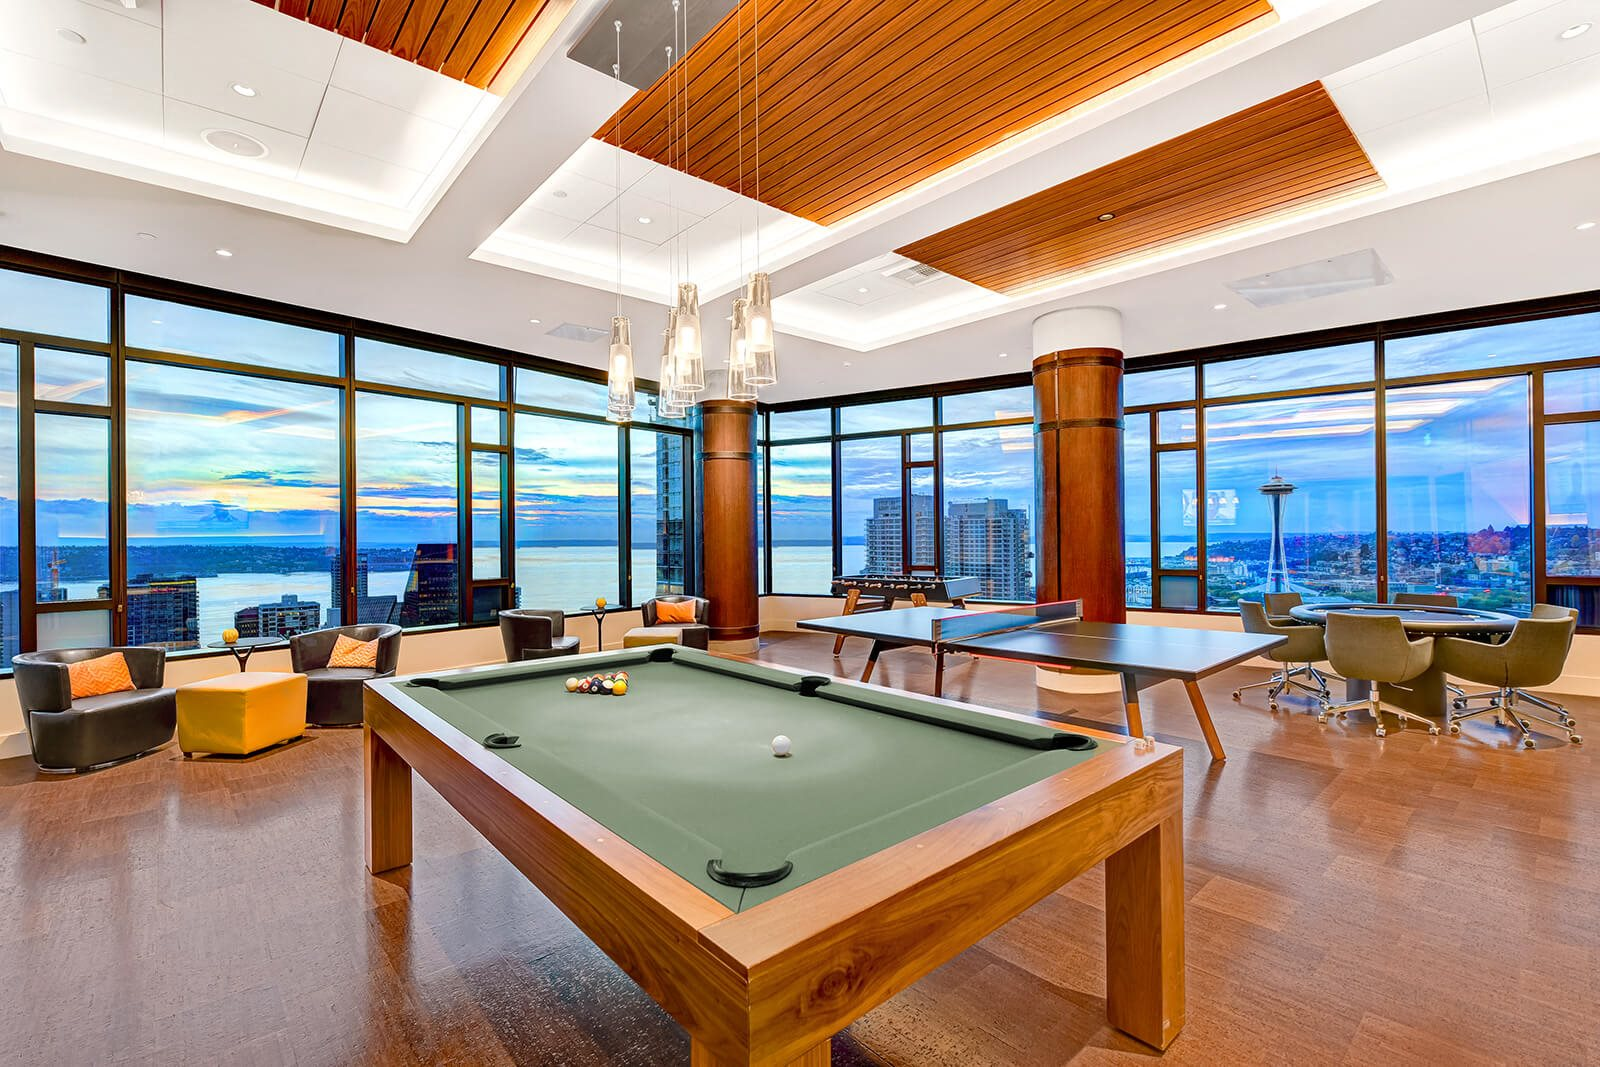 Sky Lounge That Includes Billiards, Ping Pong, and Foosball Tables at Cirrus, Seattle, 98121